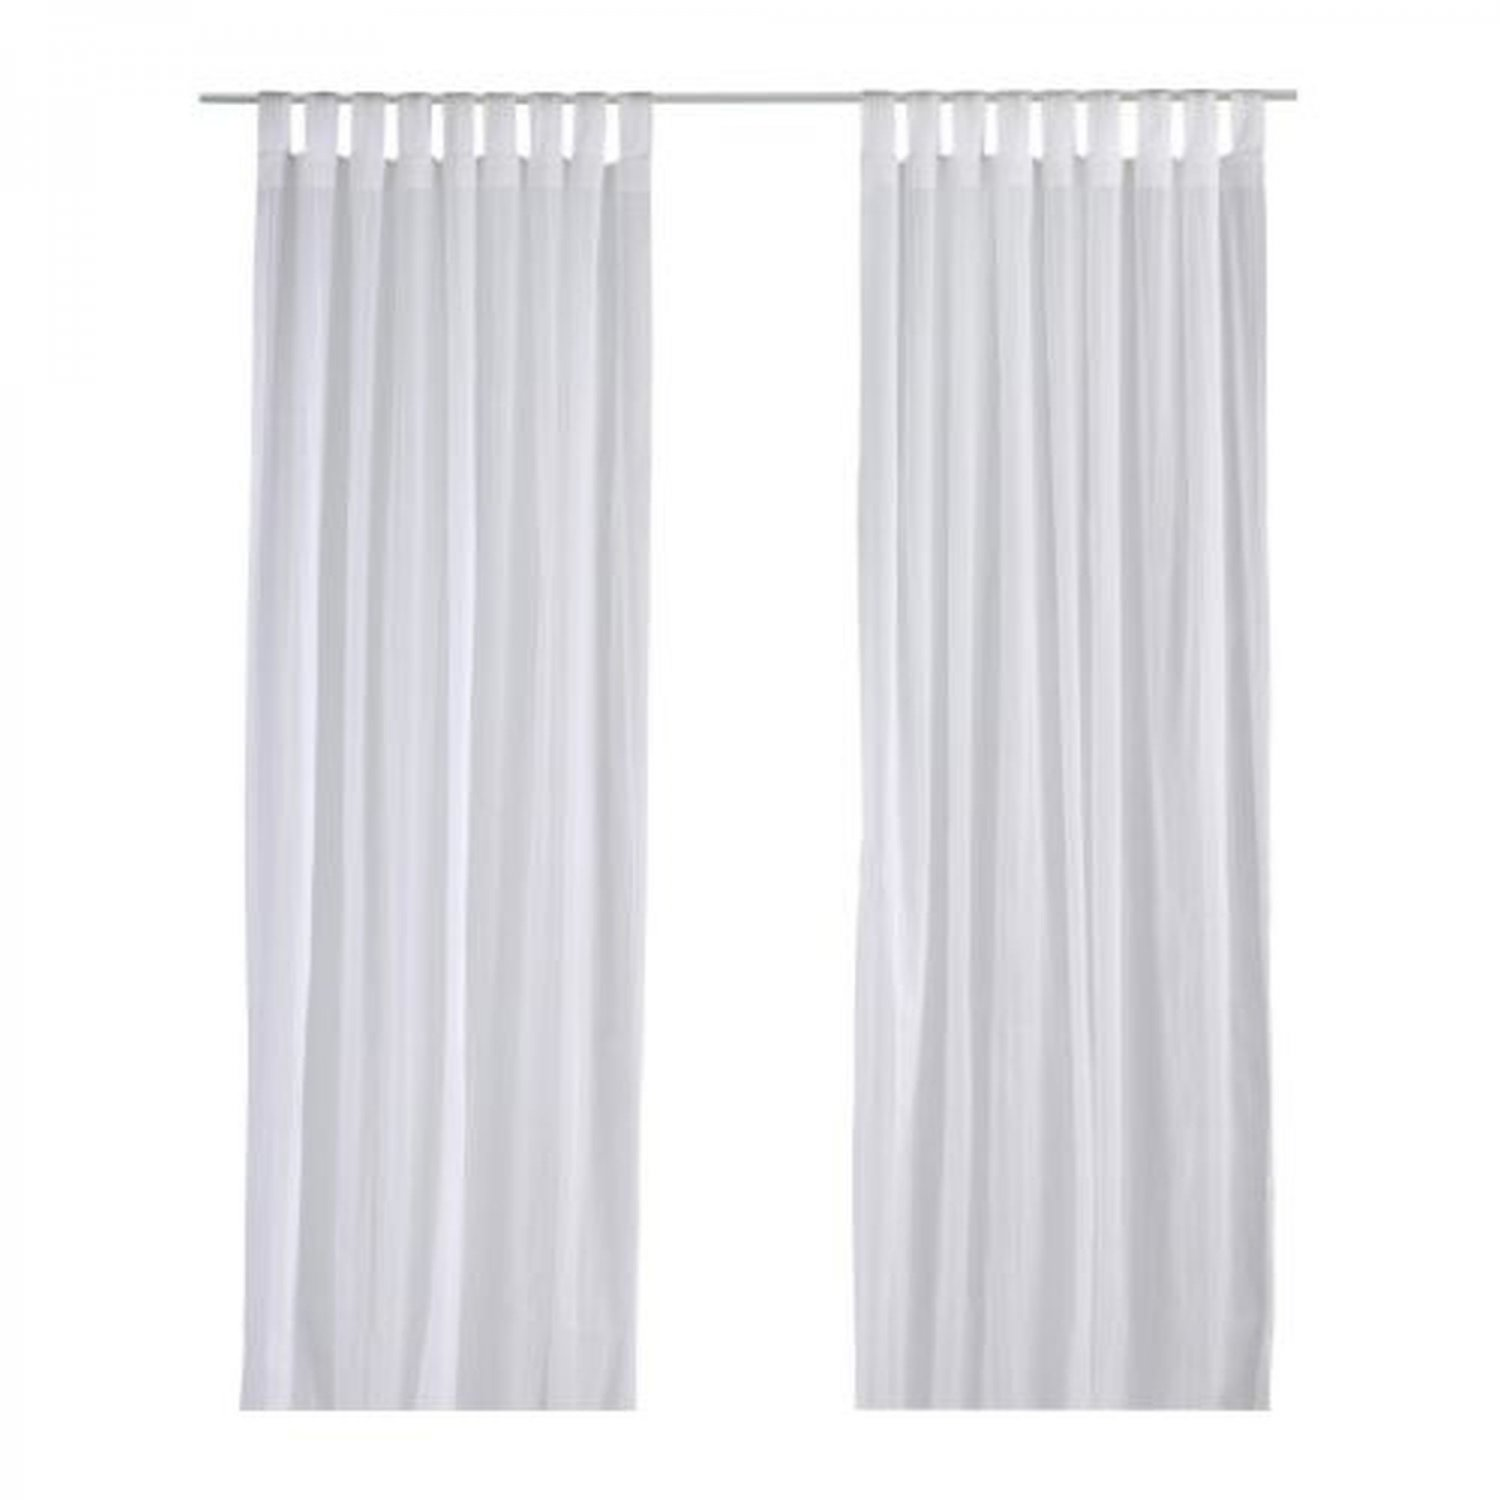 ikea matilda curtains drapes white on white dotted stripes 118 long. Black Bedroom Furniture Sets. Home Design Ideas